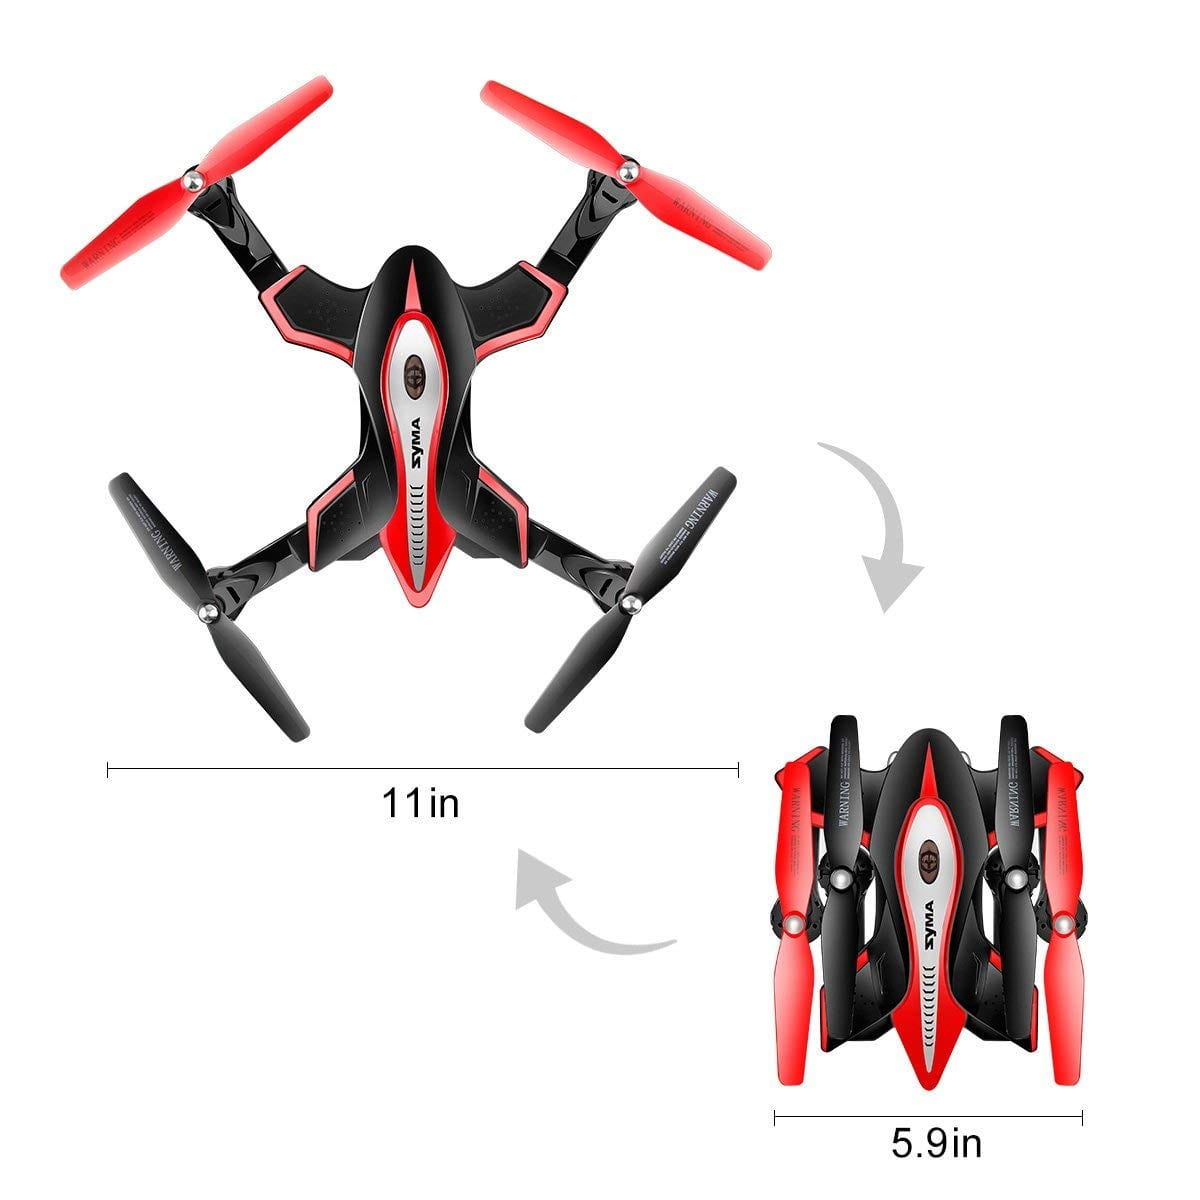 Syma X56W Foldable RC Drone with FPV HD WiFi Camera Live Video - Altitude Hold Headless Mode One Key Return Black $41.93 AC FS Amazon Prime